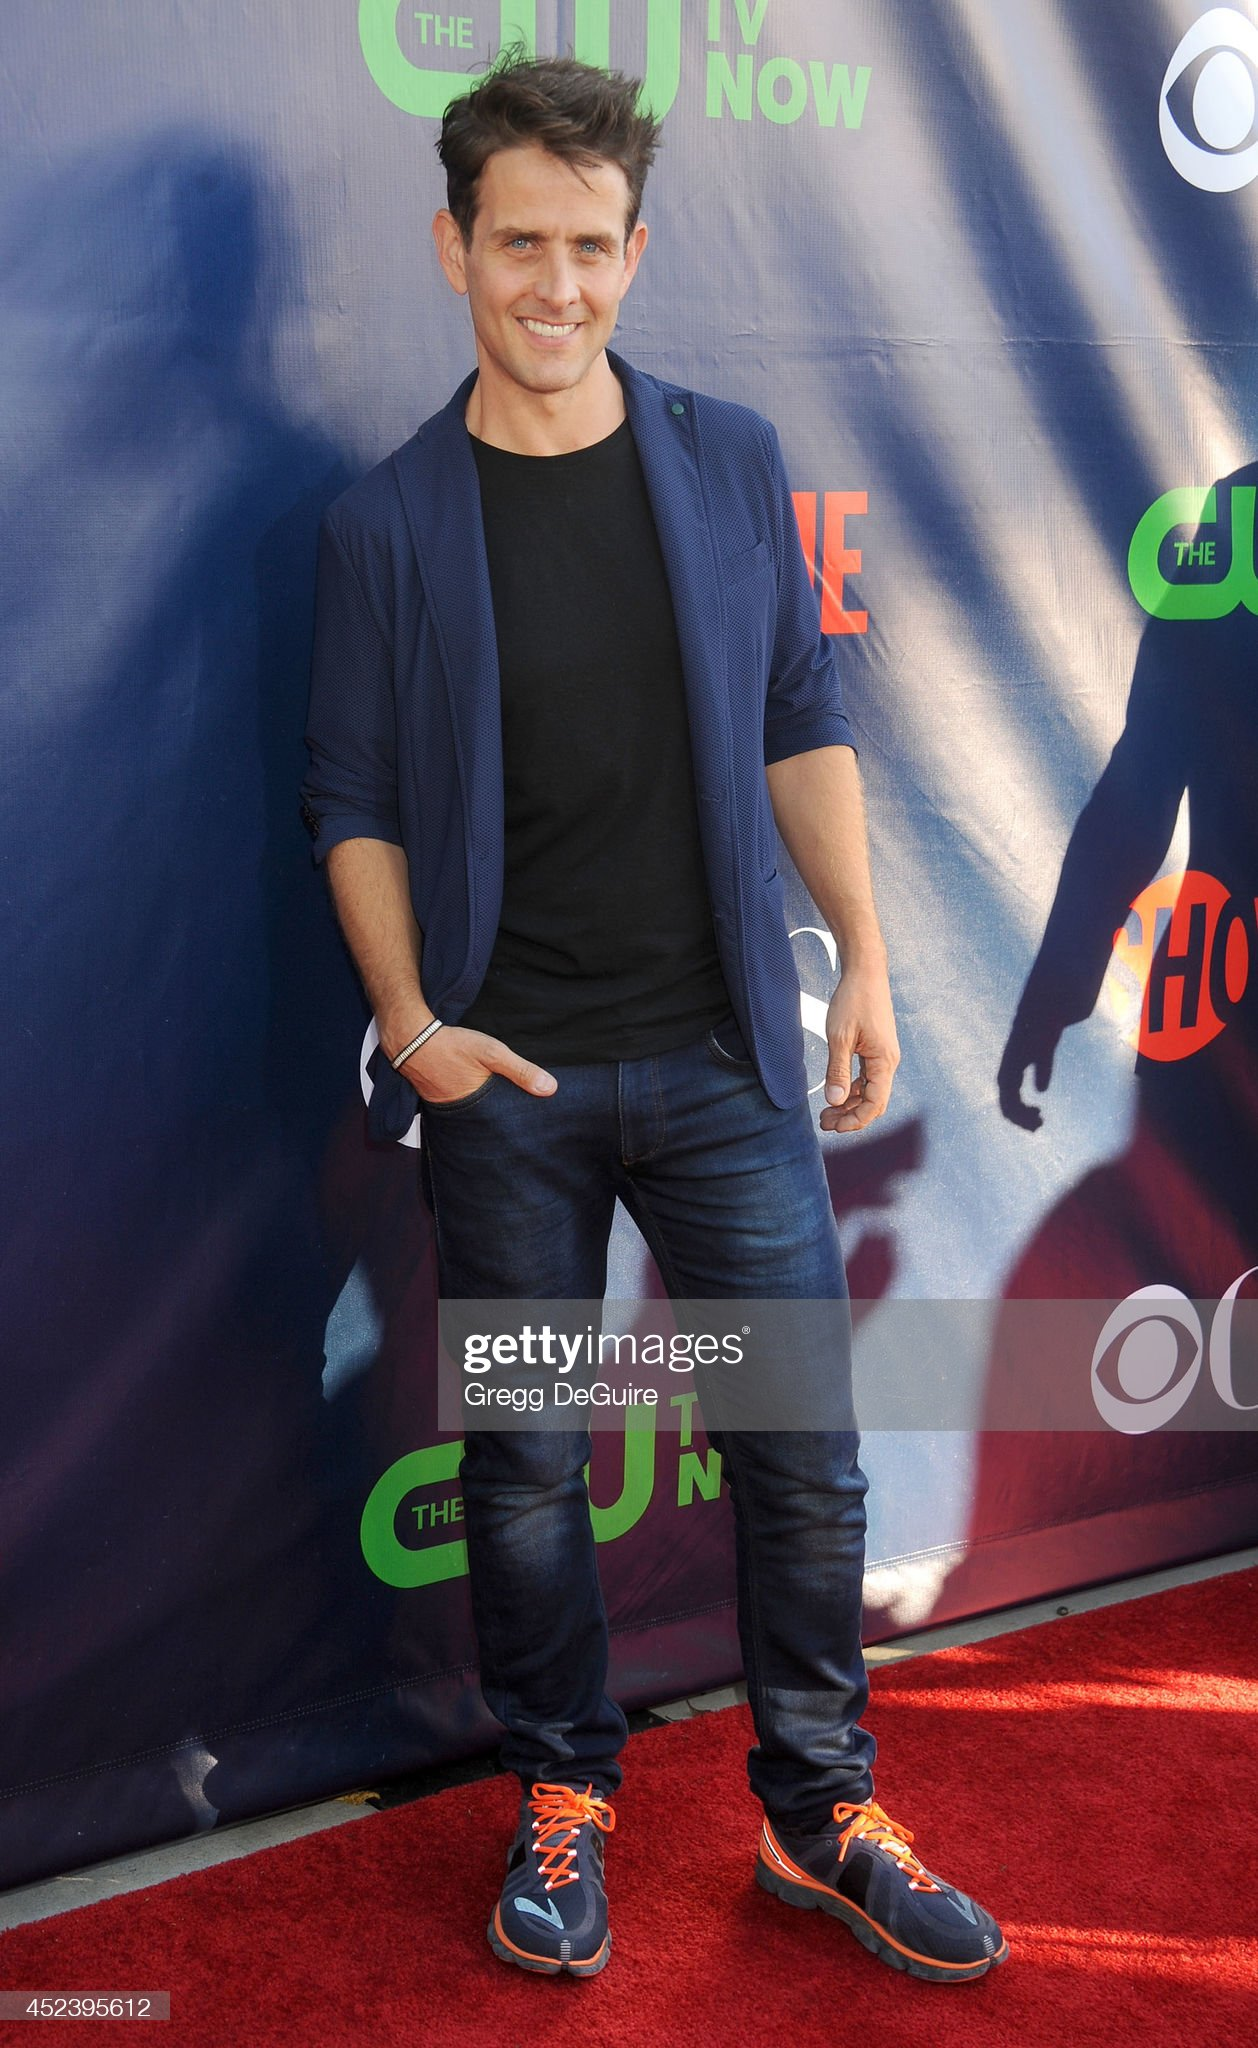 ¿Cuánto mide Joey McIntyre? - Real height Actorsinger-joey-mcintyre-arrives-at-the-2014-television-critics-picture-id452395612?s=2048x2048